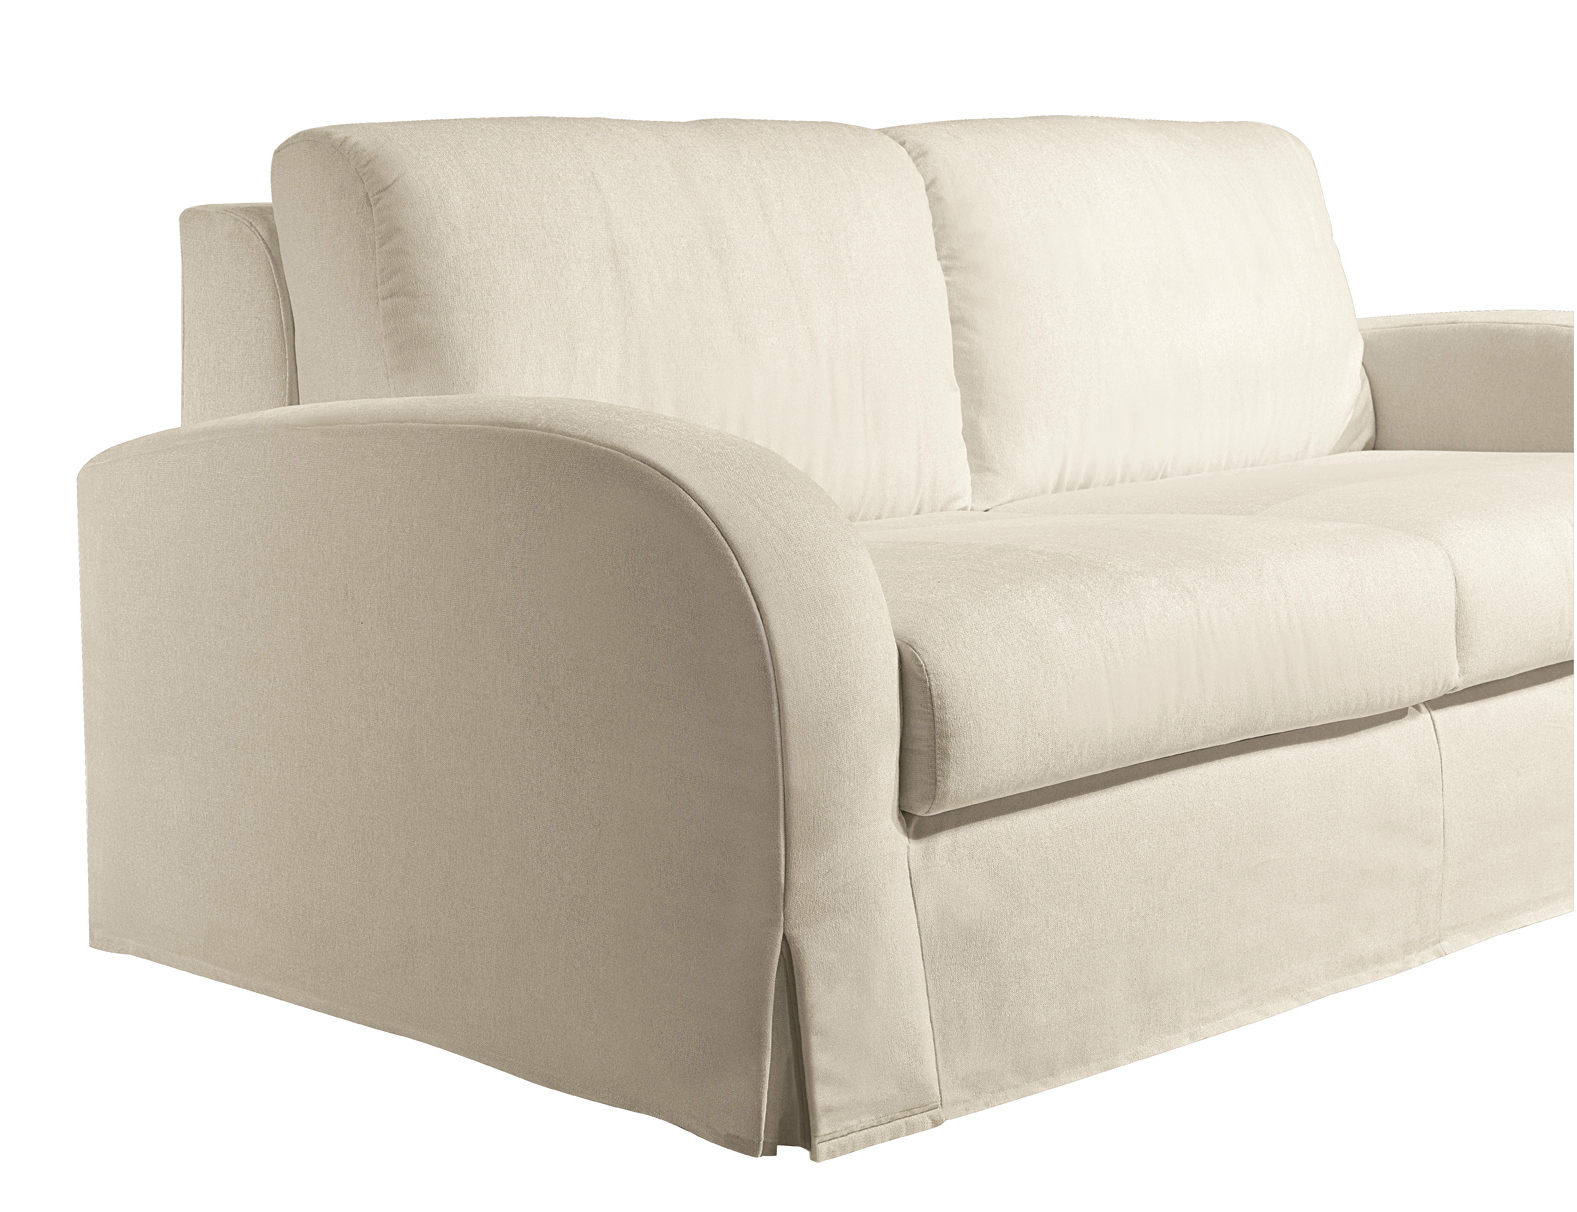 Sof cama 2 plazas de tela simply classic by bodema for Sofa cama de dos plazas baratos